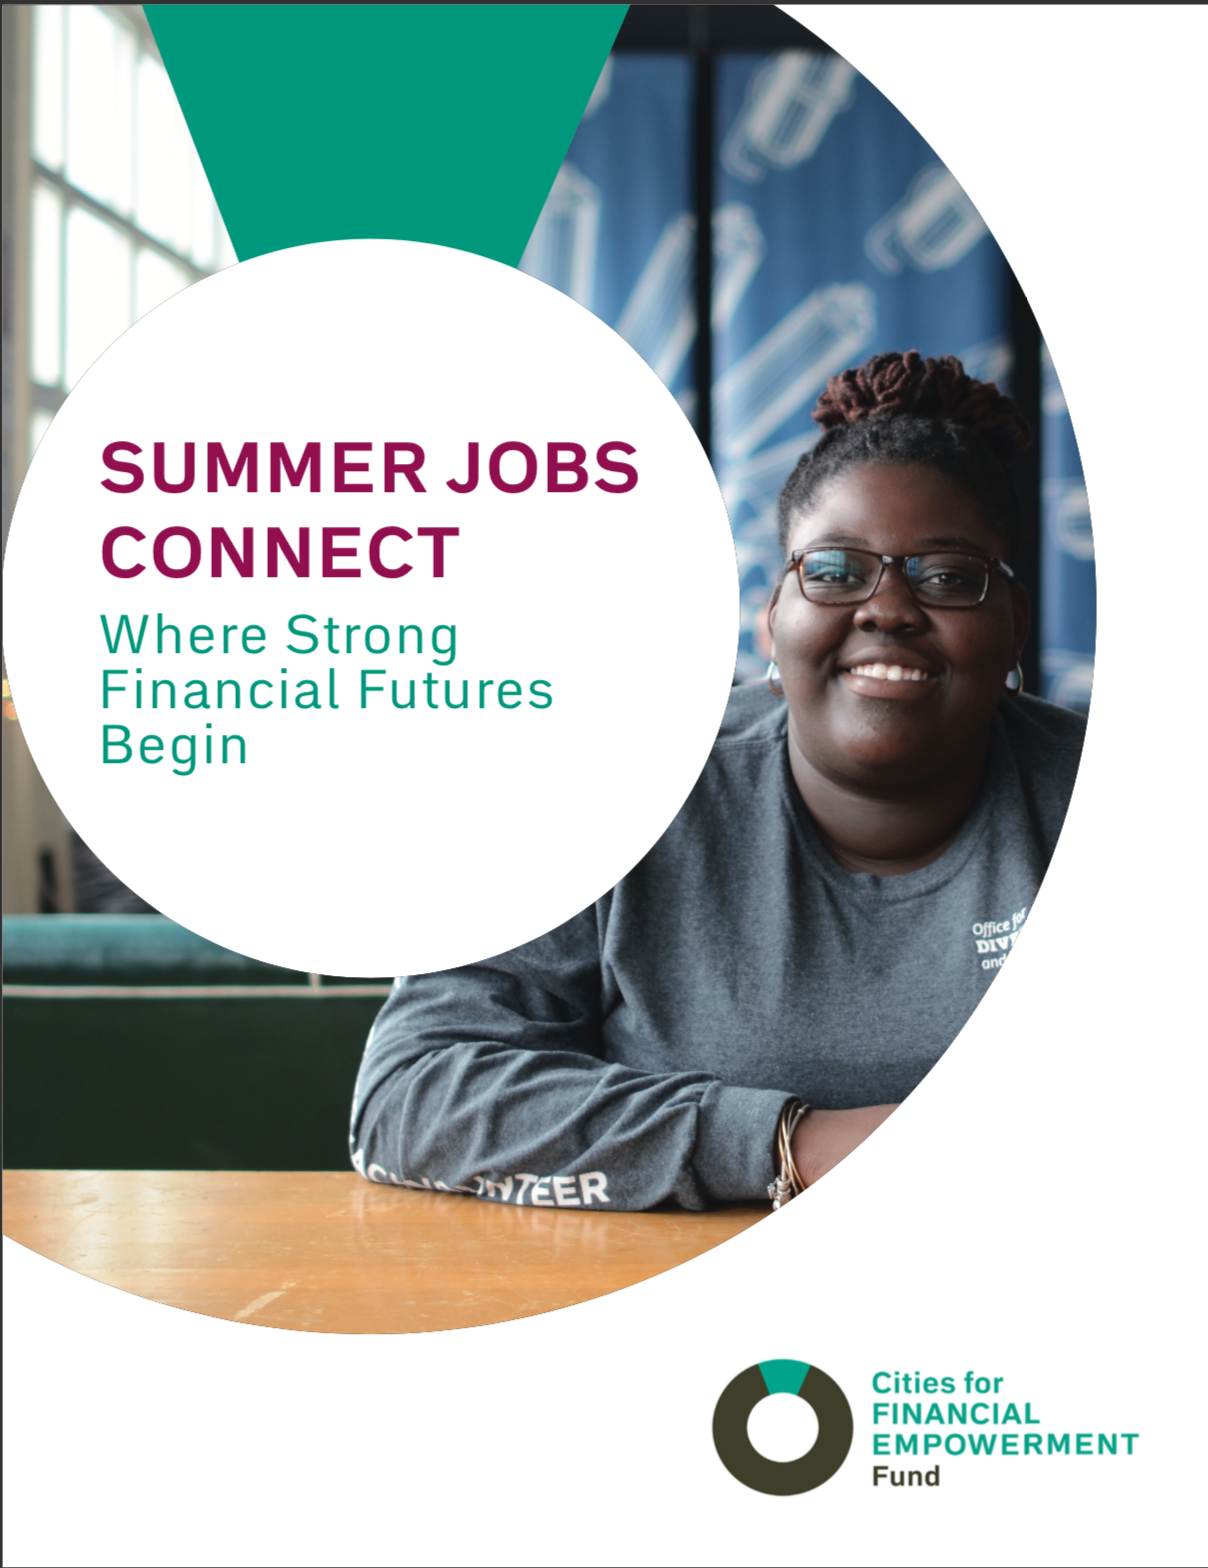 Summer Jobs Connect